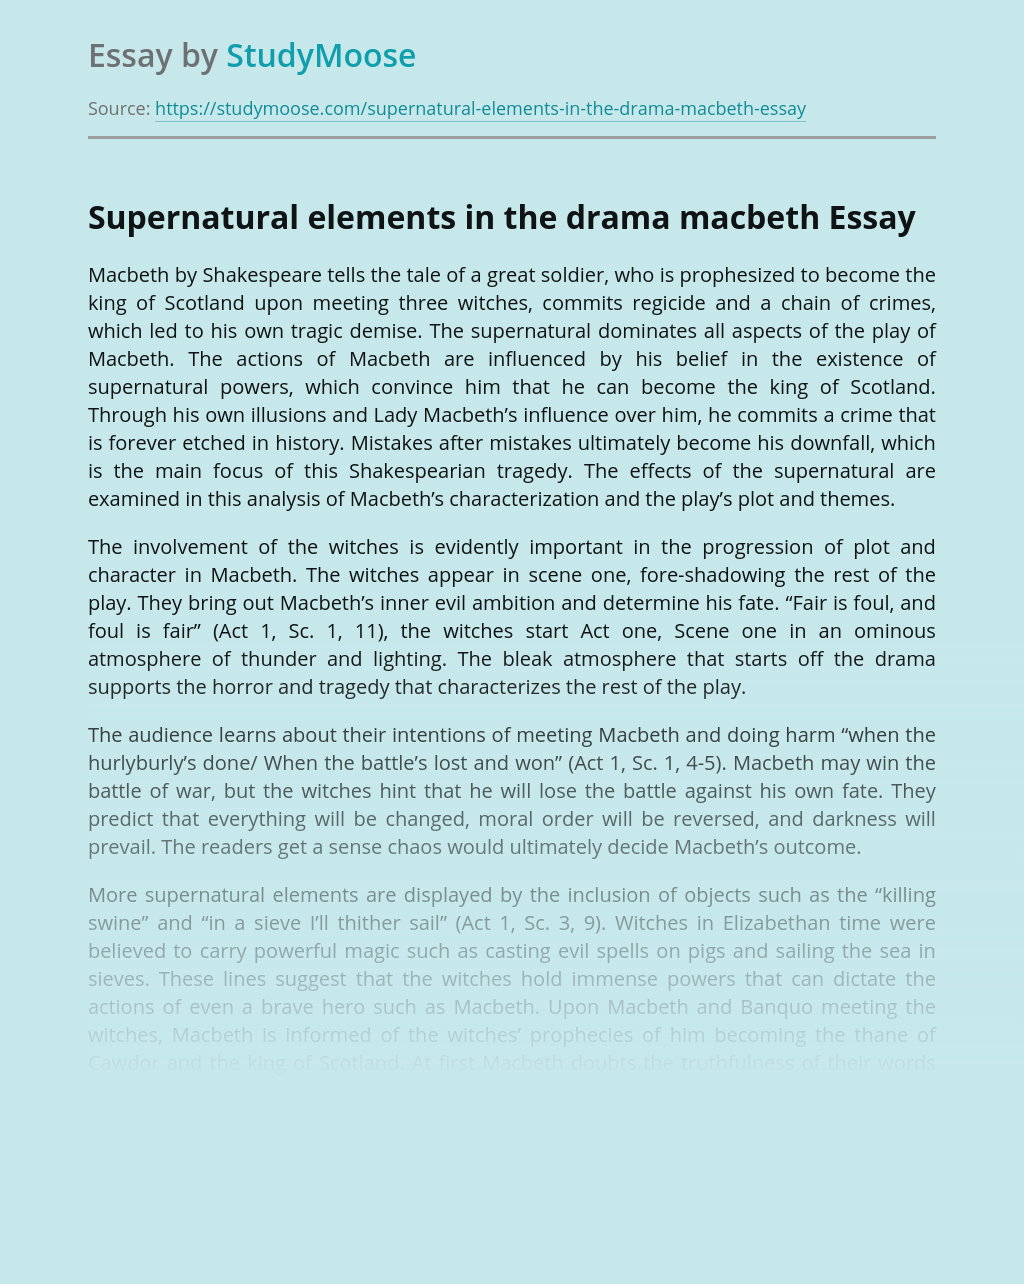 Supernatural elements in the drama macbeth